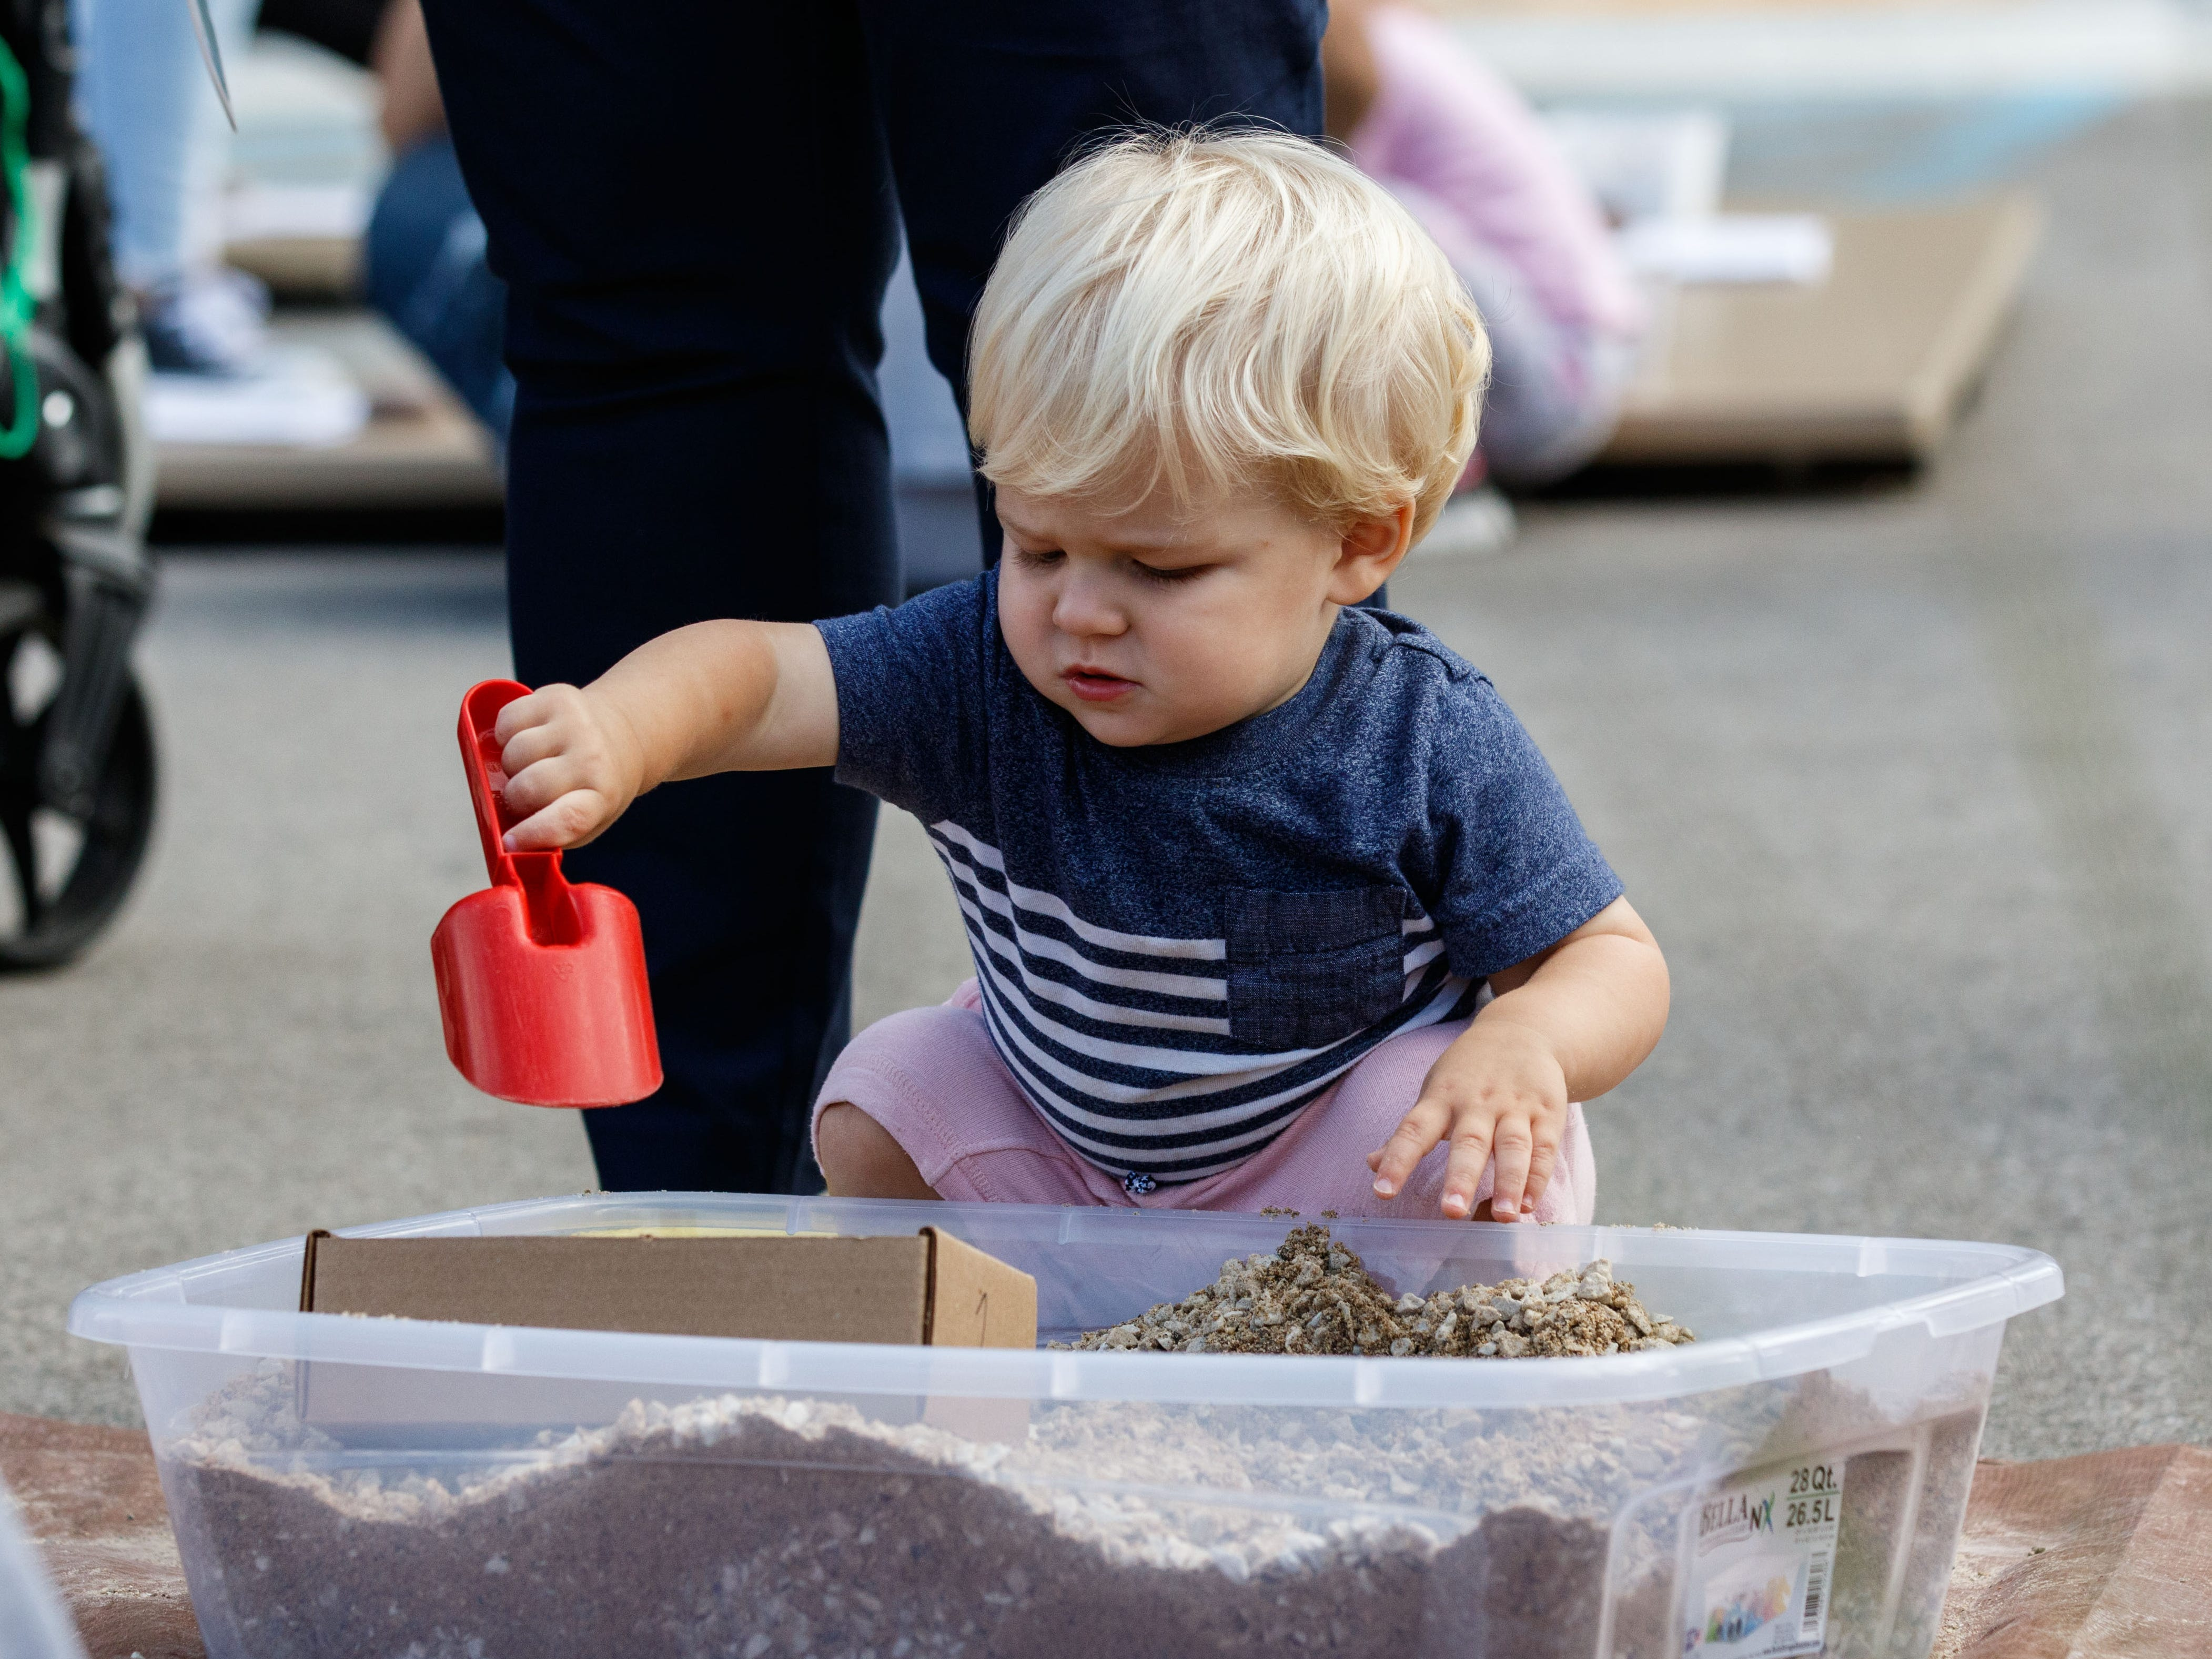 Seventeen-month-old Elliott Gale of Sussex keeps busy in the children's play area during the Sussex Touch-a-Truck event at the Civic Center on Monday, Sept. 10, 2018.